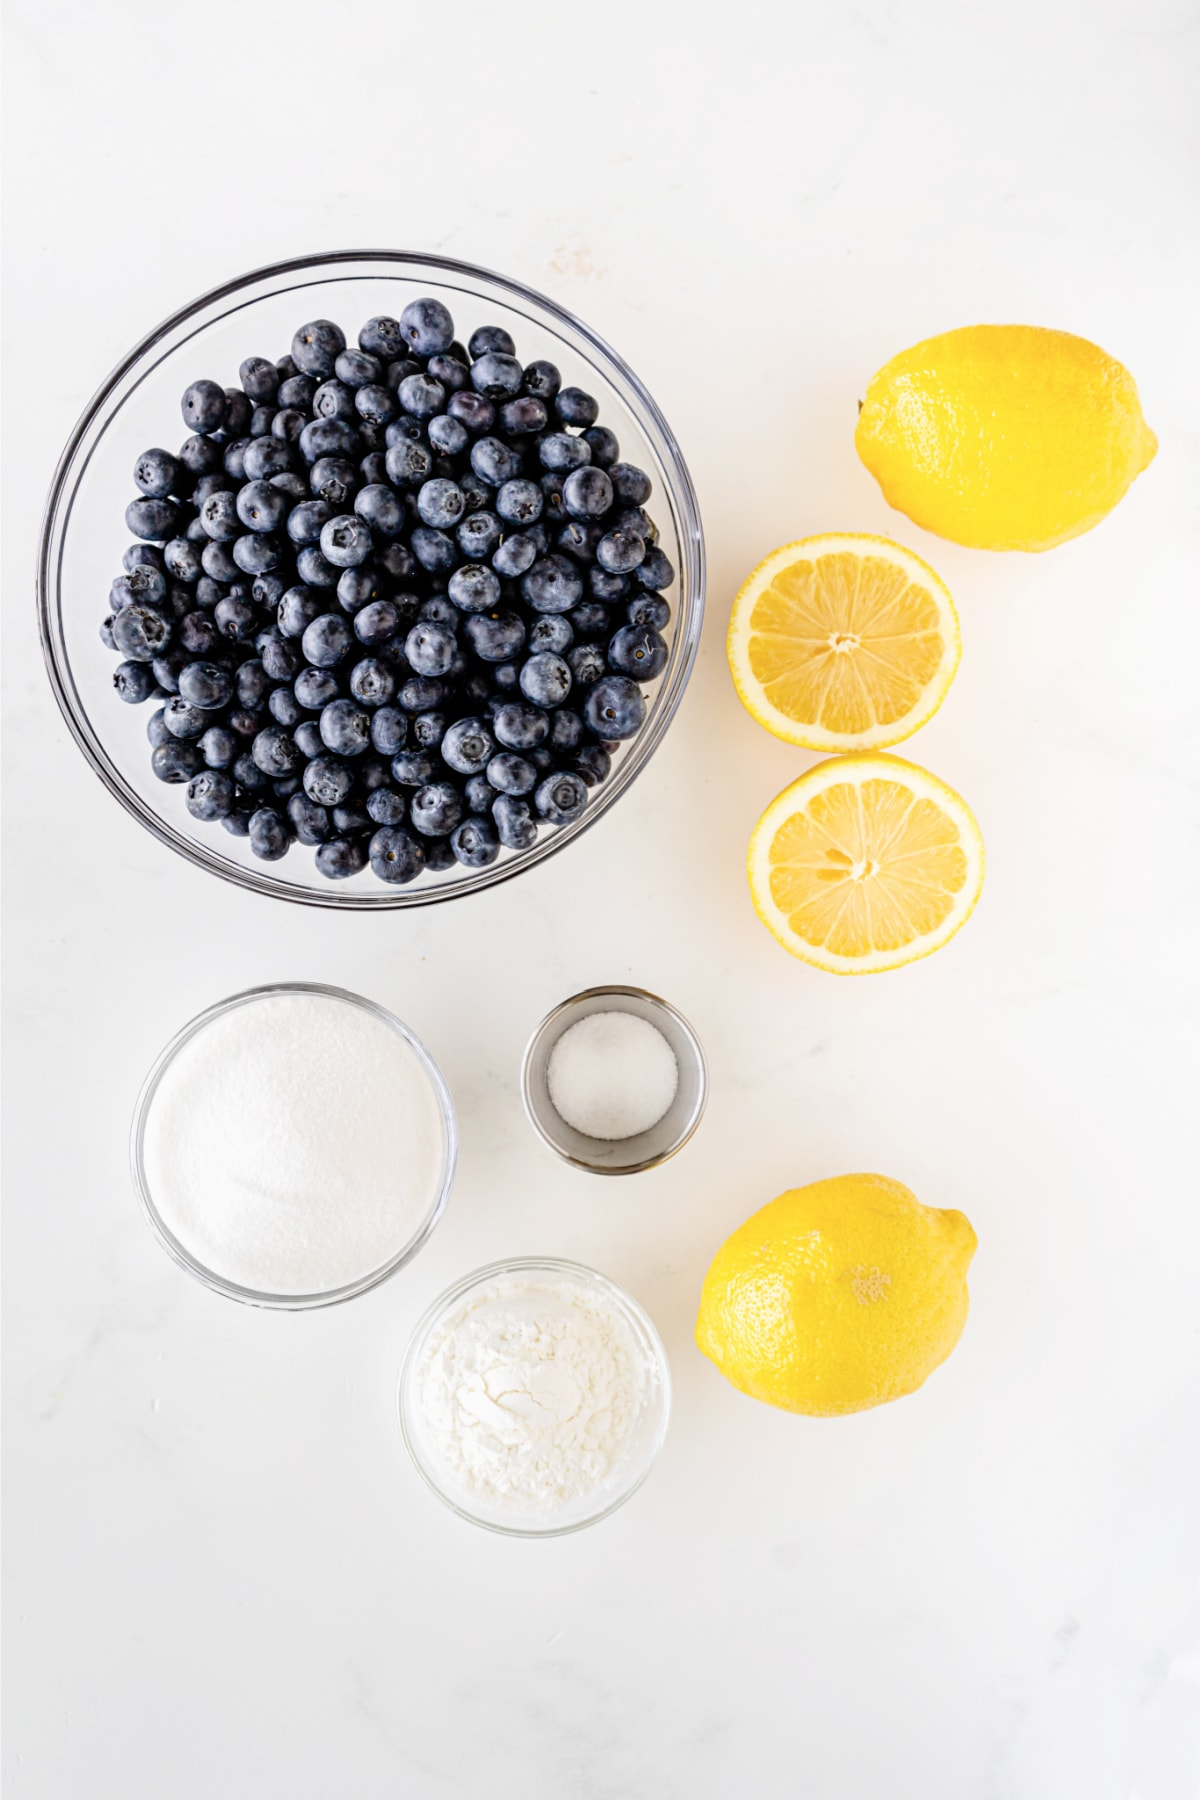 Blueberry filling ingredients